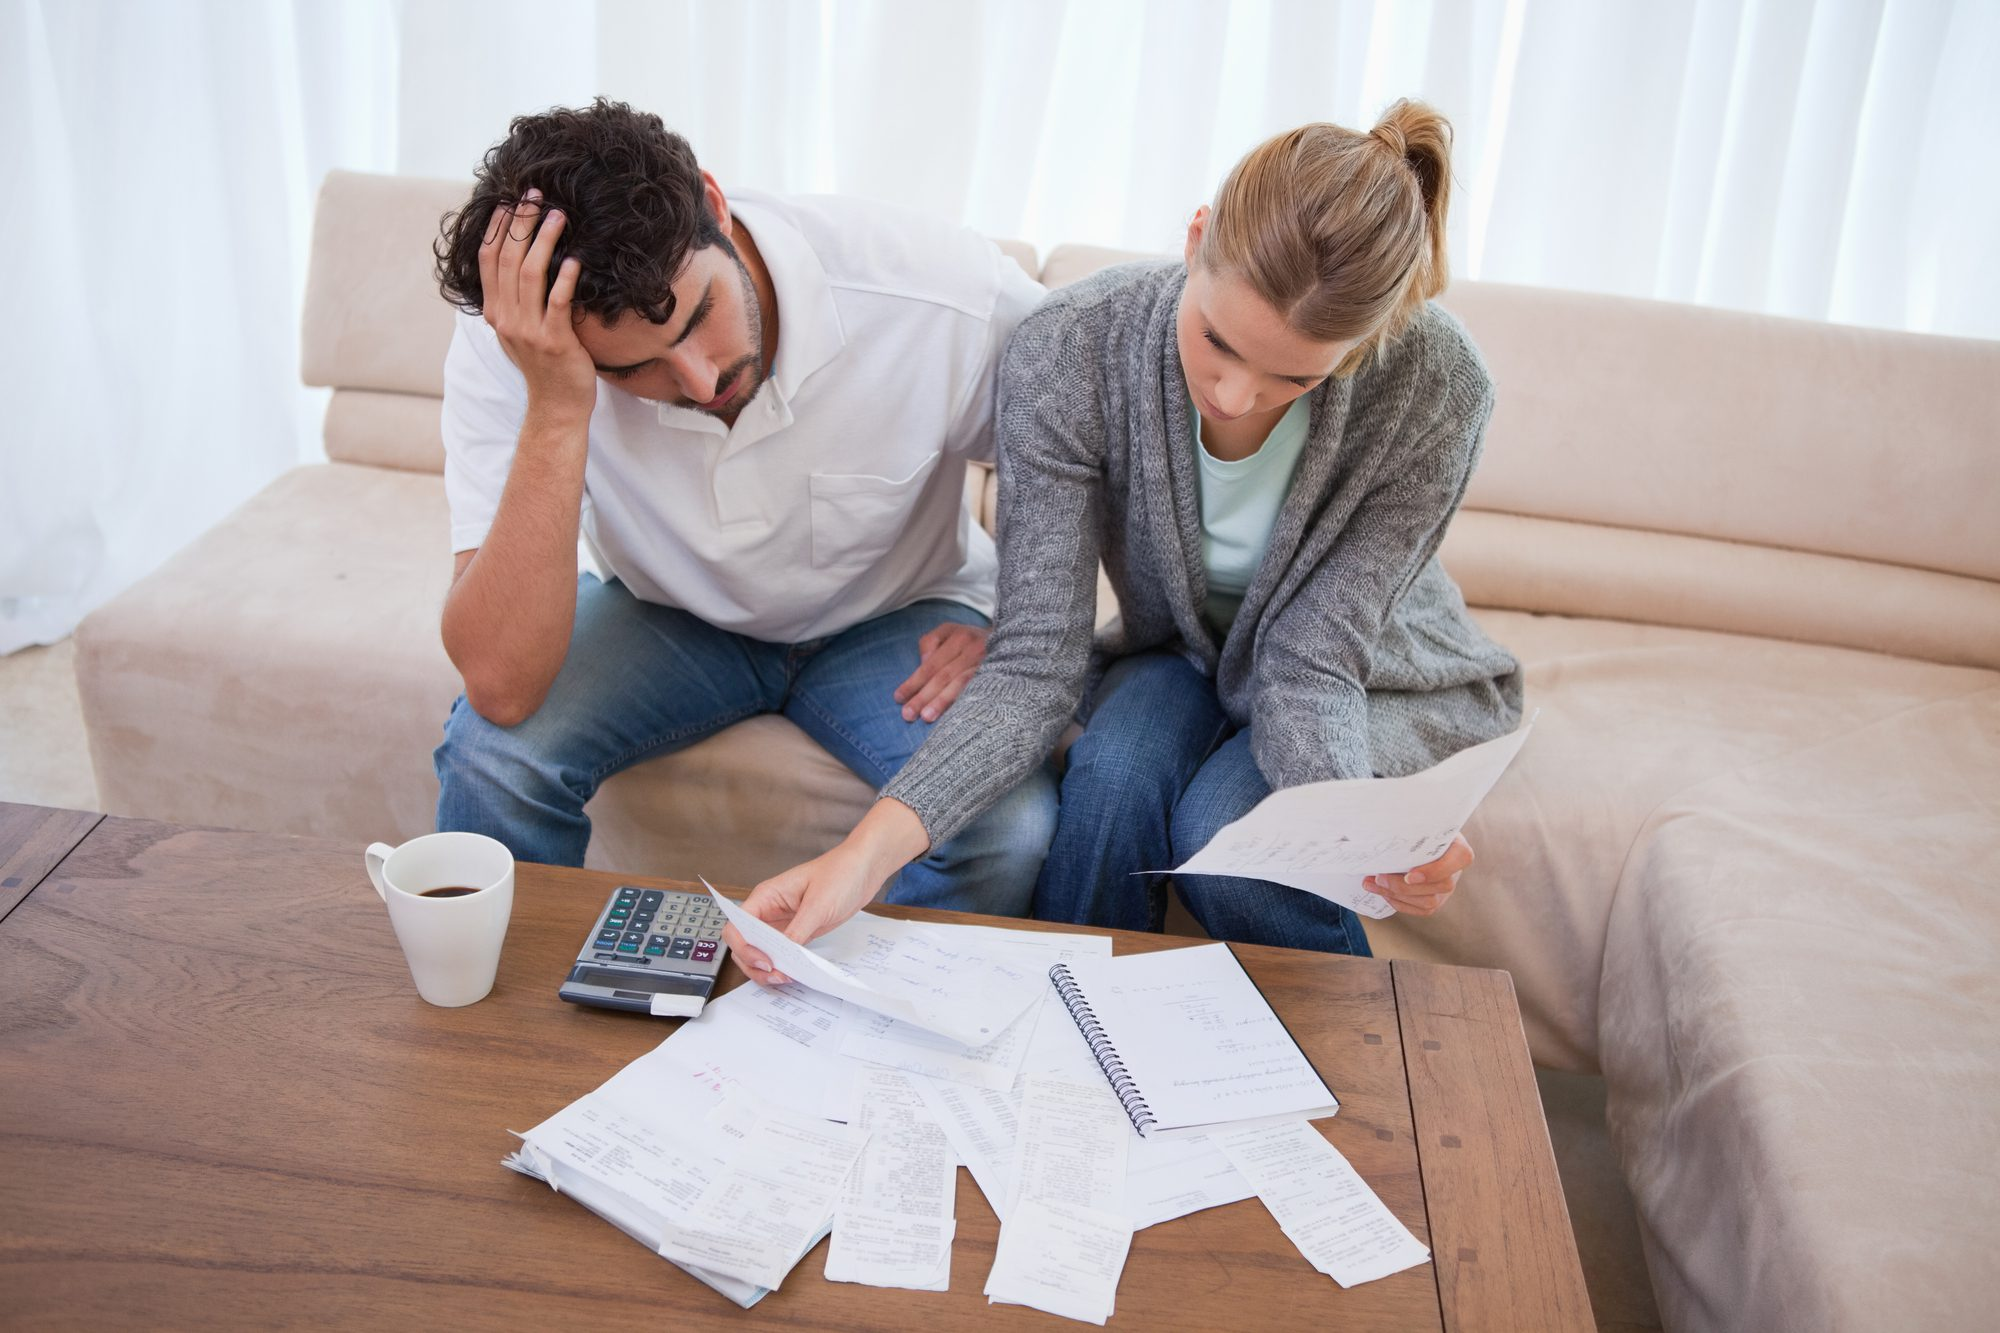 Couple paying bills and contemplating debt consolidation vs. personal bankruptcy.